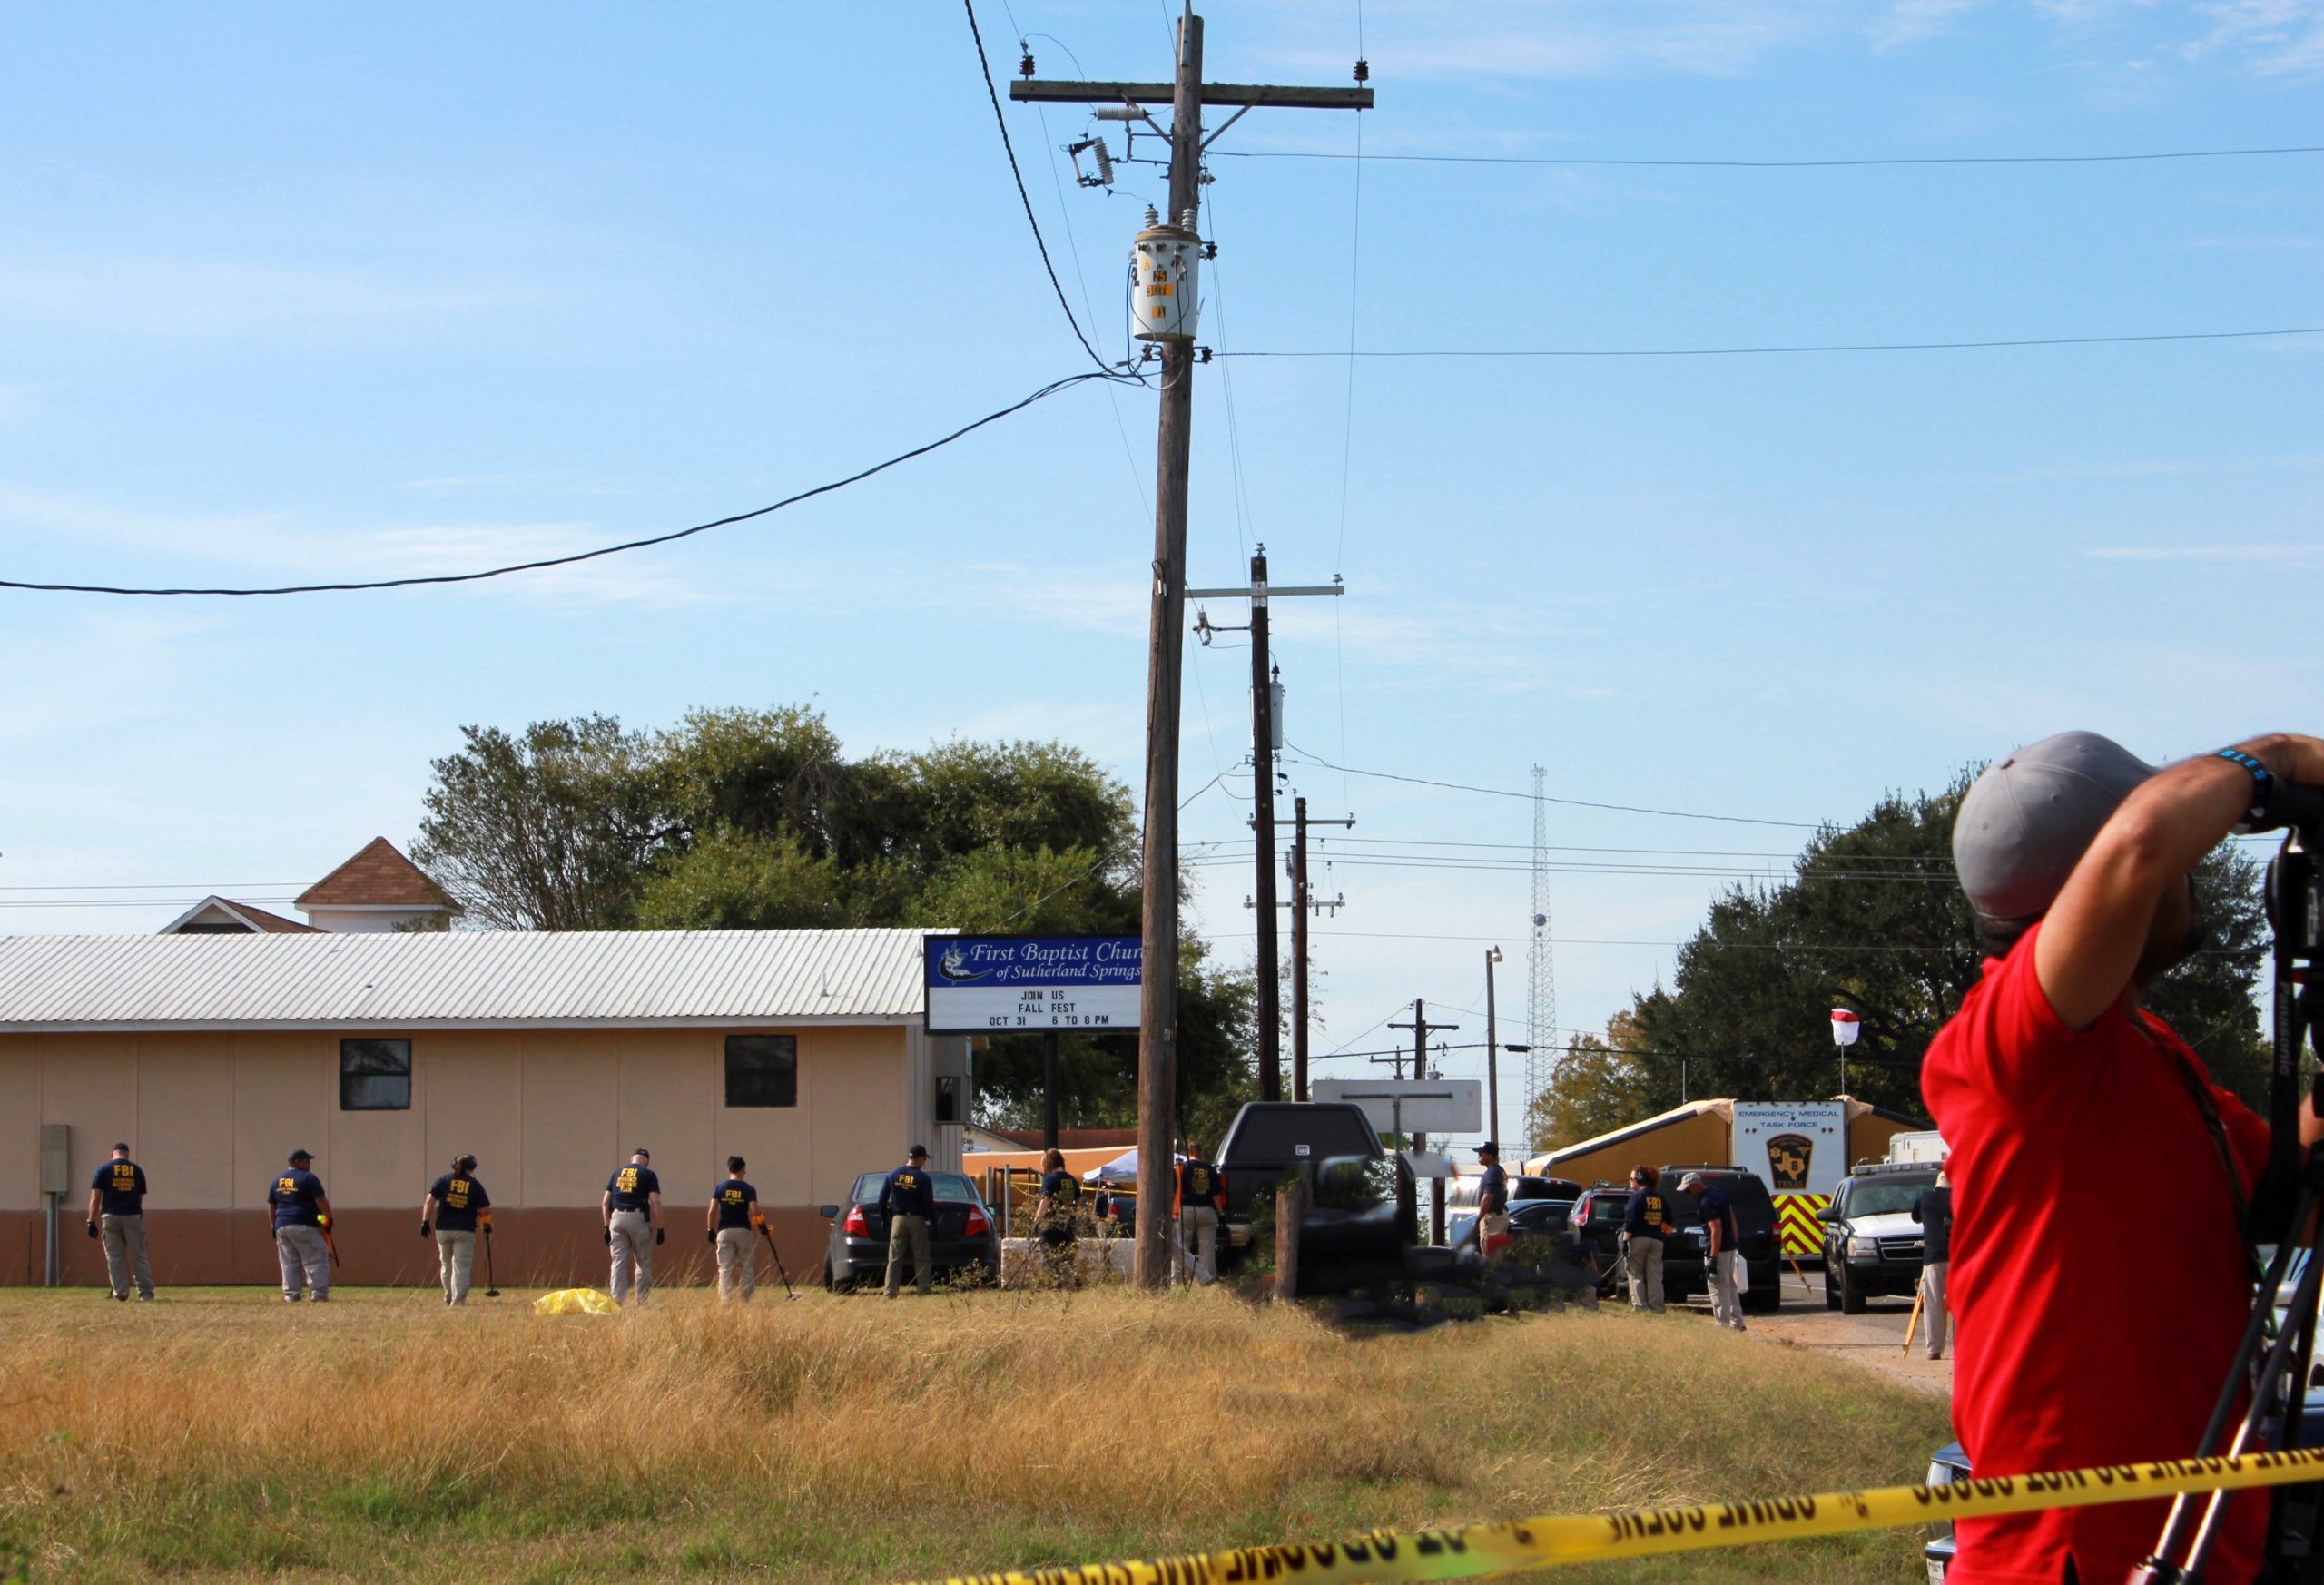 The FBI searches the premises of the First Baptist Church in Sutherland Springs after Sunday's shooting. Heather Montoya/The Paisano